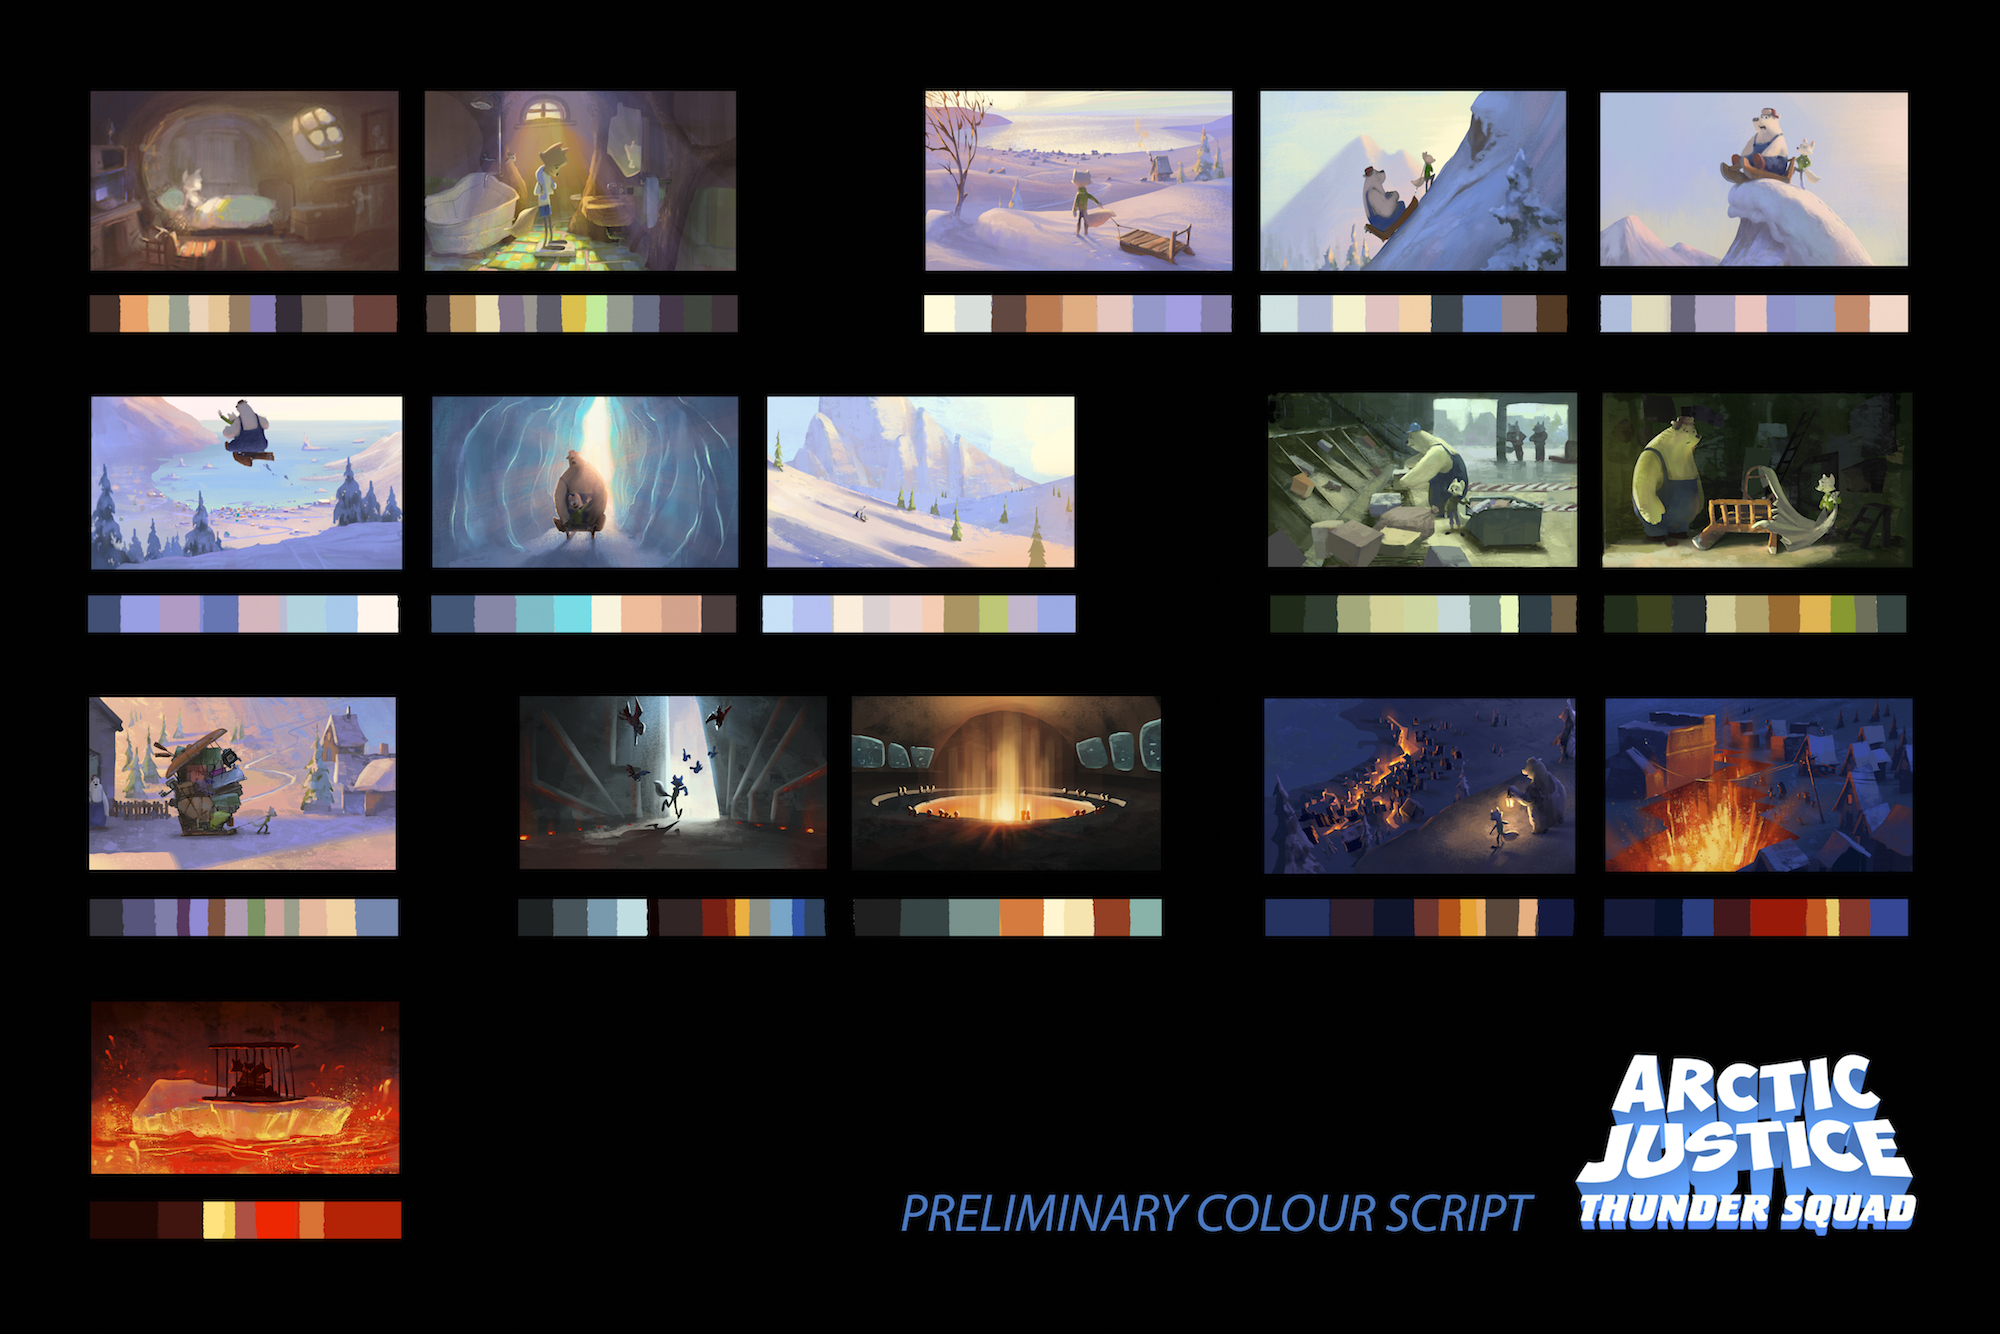 Feature film, color script